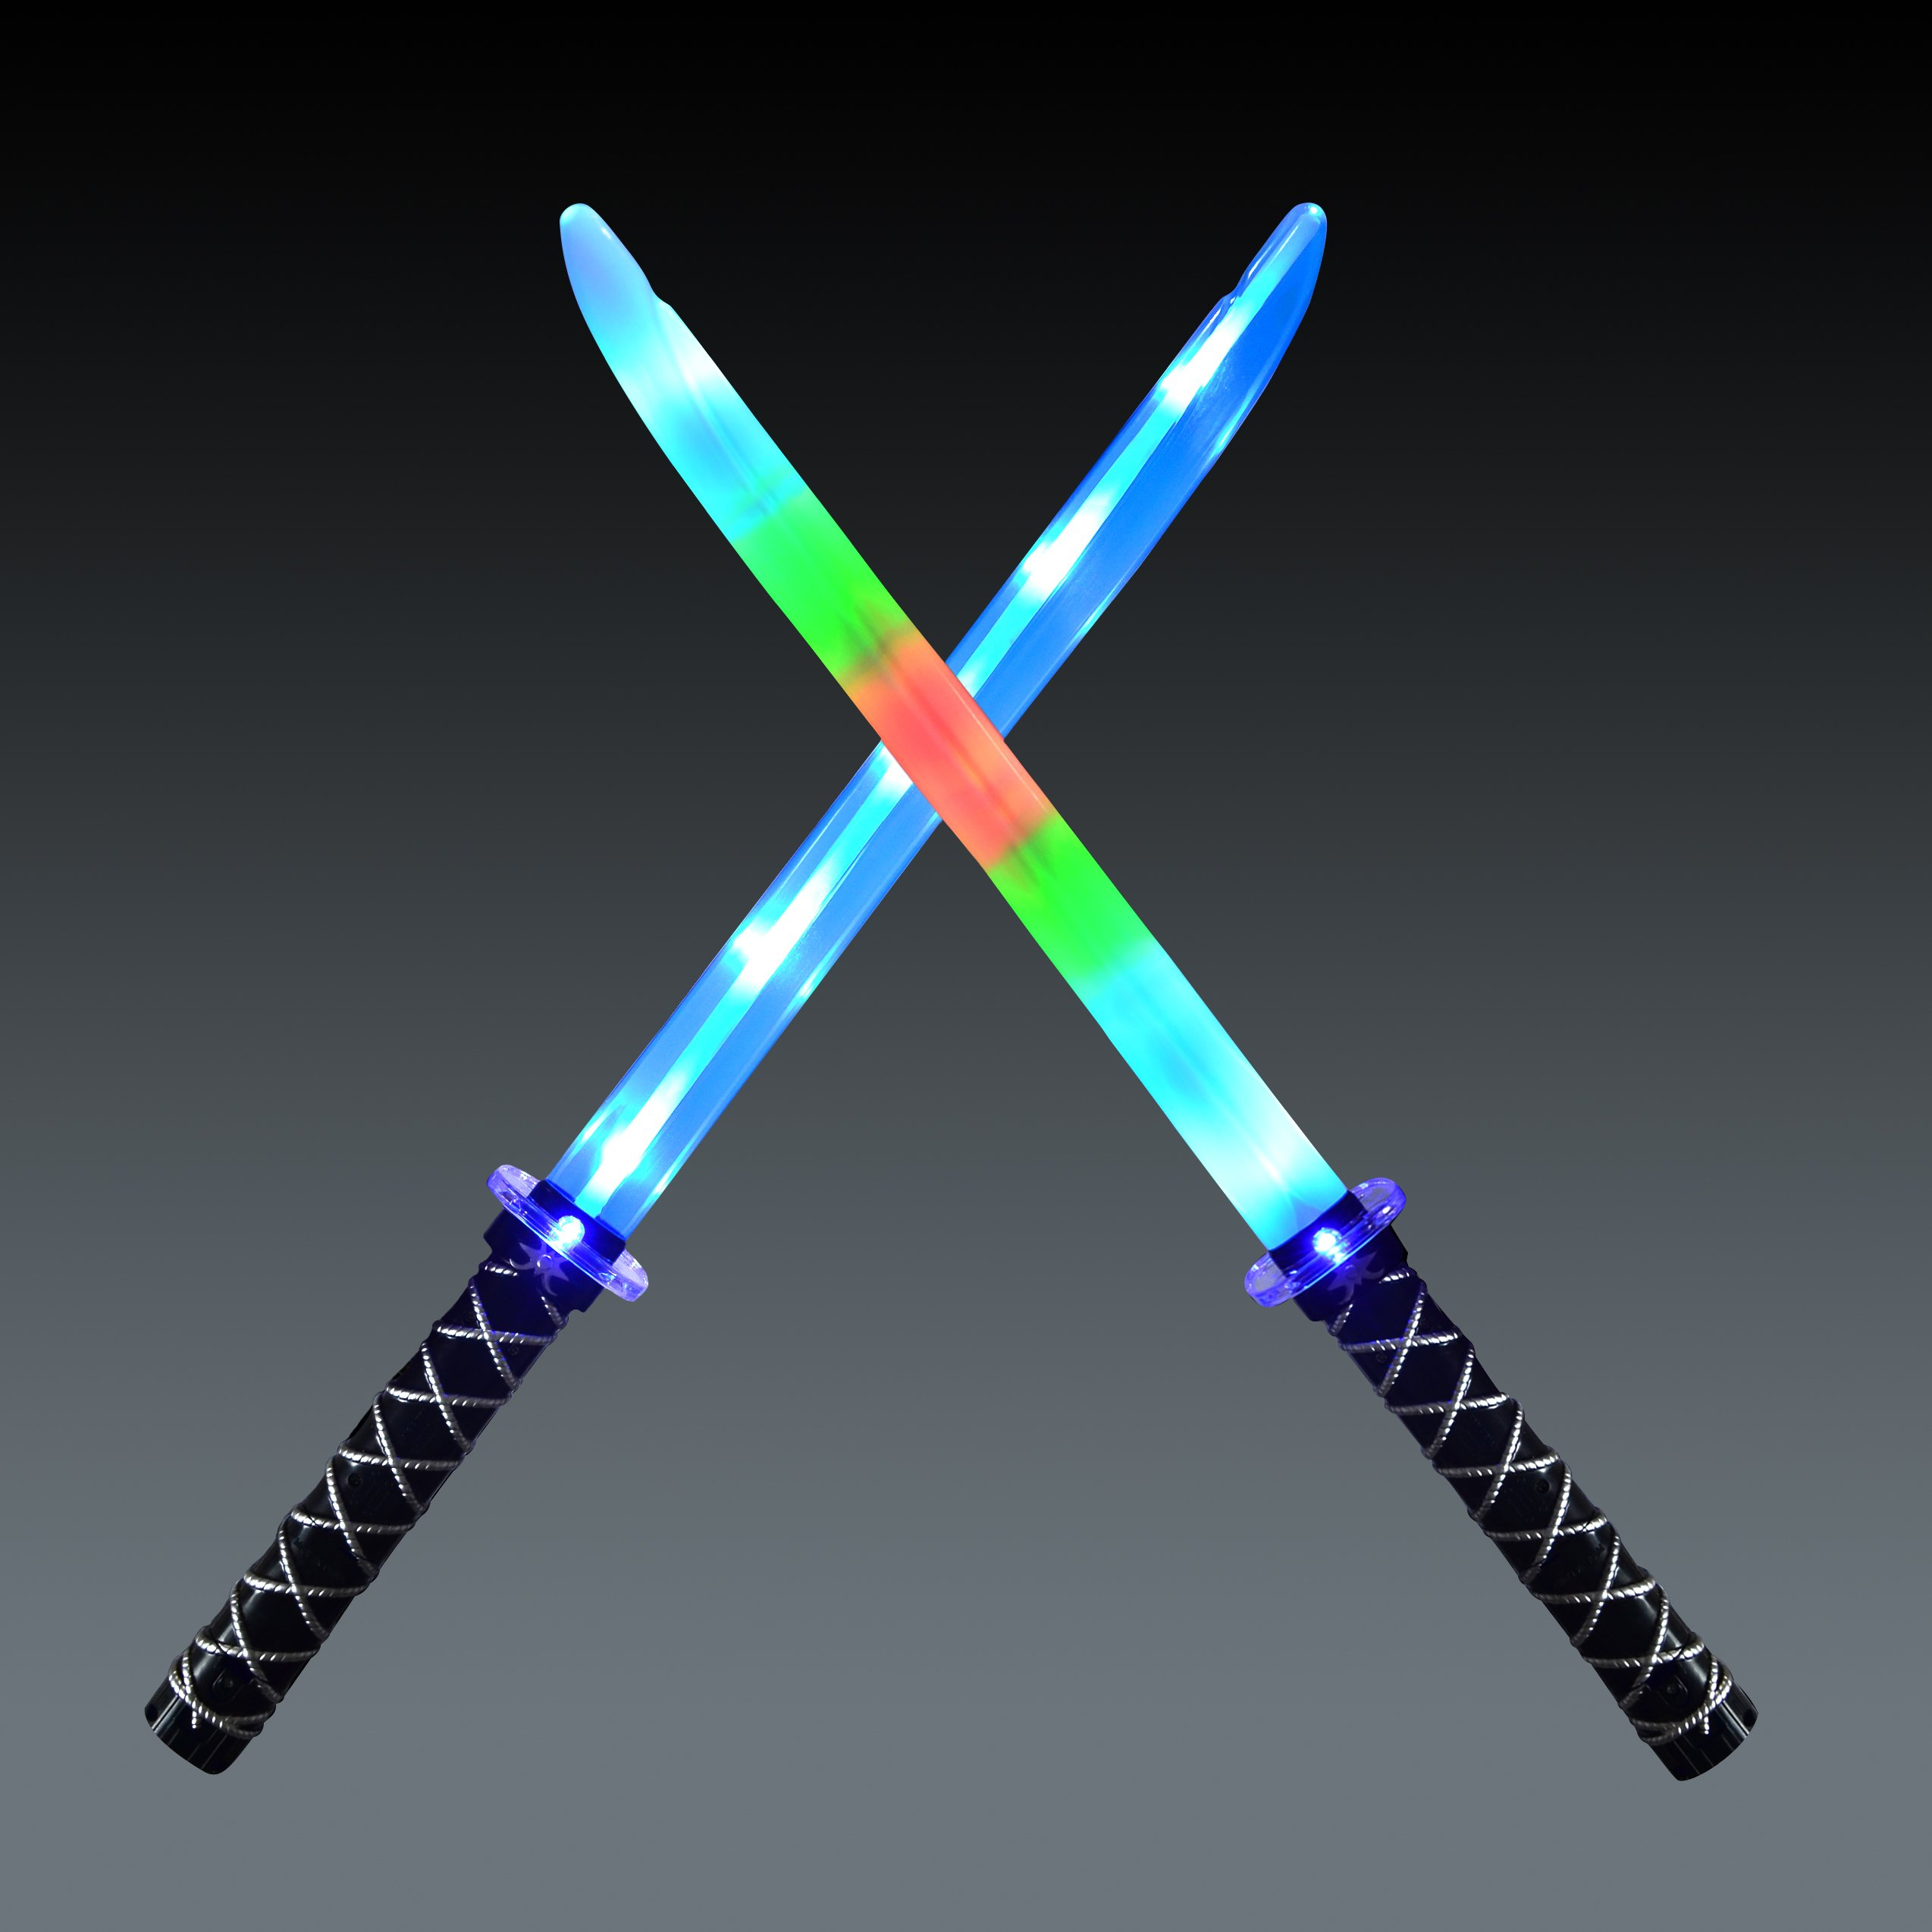 Joyin Toy 2 Deluxe Ninja LED Light Up Swords with Motion Activated Clanging Sounds – Bright Blue and Multi Color Sword for Halloween Party, Costume Accessories